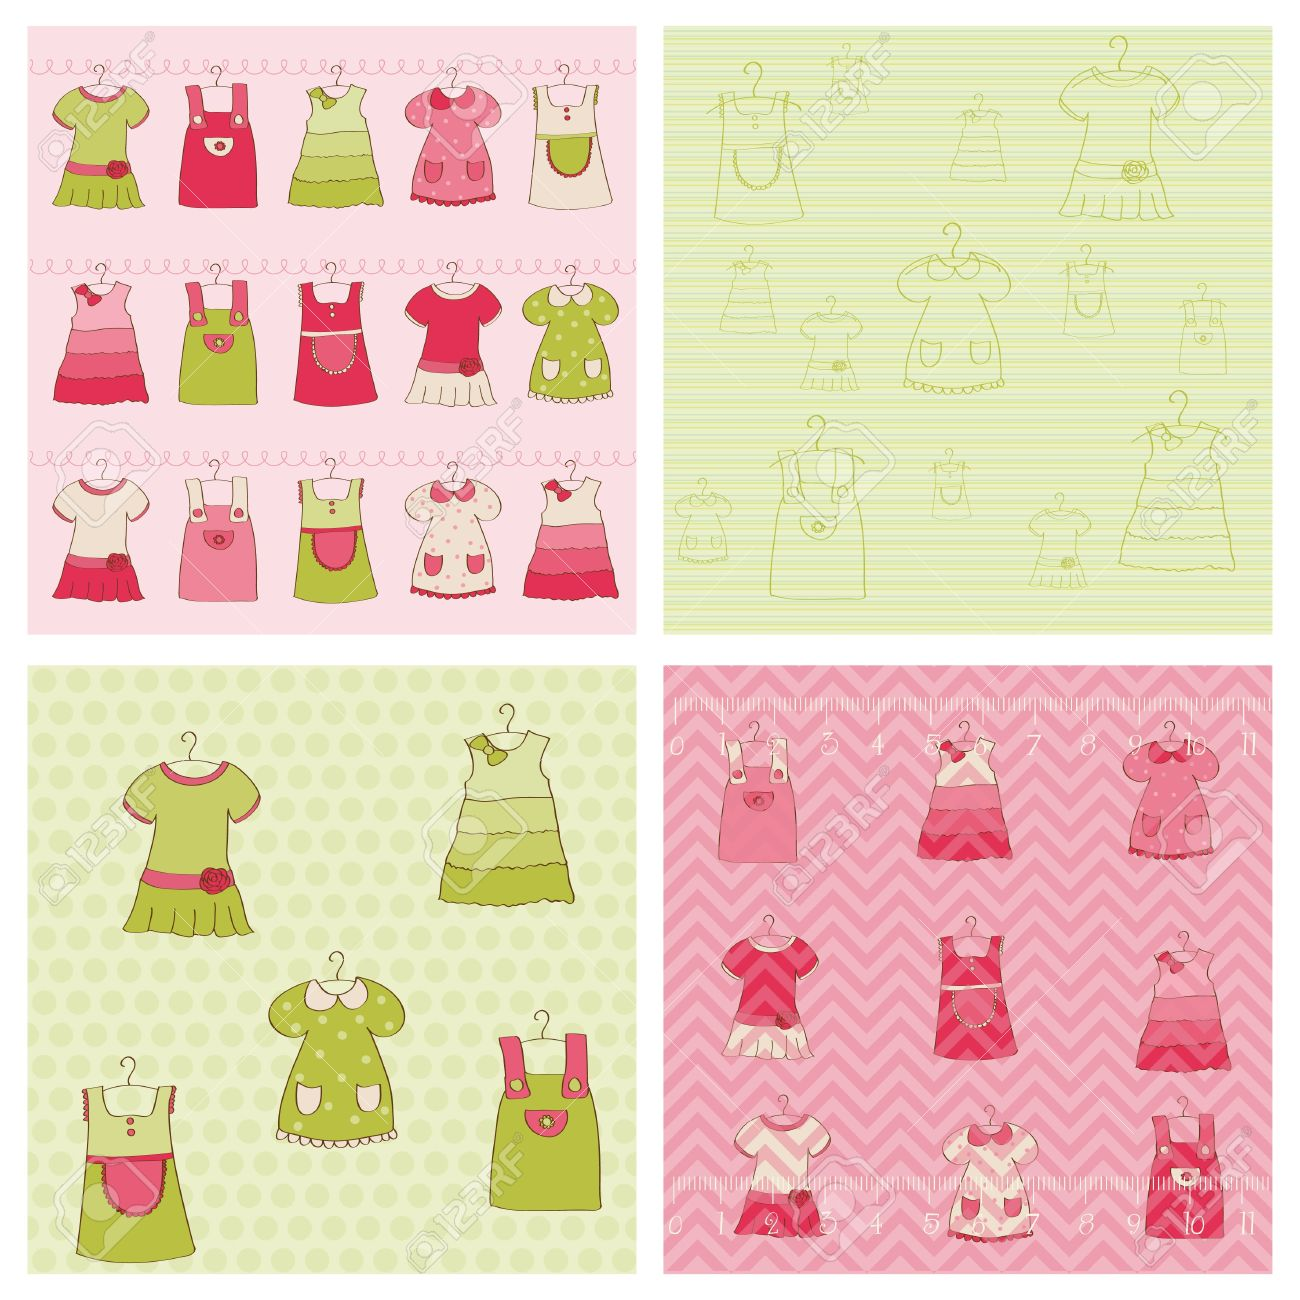 How to scrapbook for baby girl - Seamless Background Collection Baby Girl Dress Stock Vector 10462915